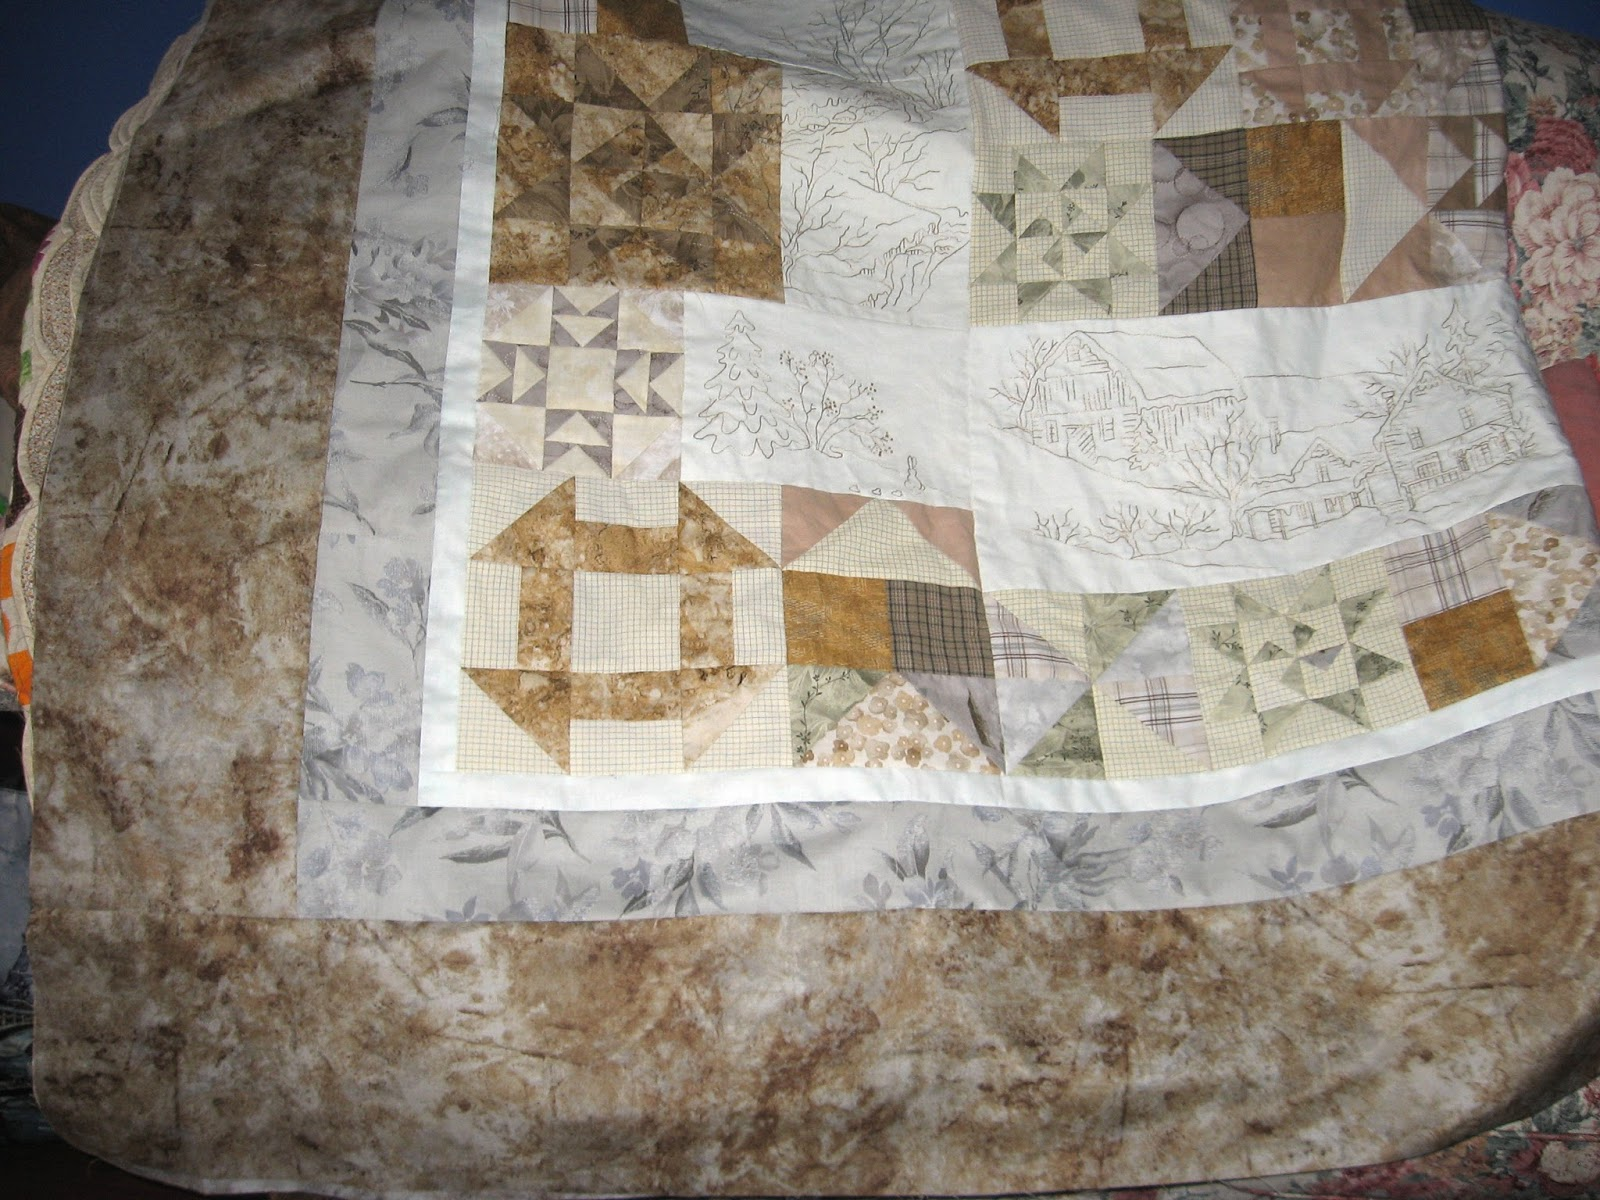 Quilted Art from Mary Katherine Hopkins: October 2017